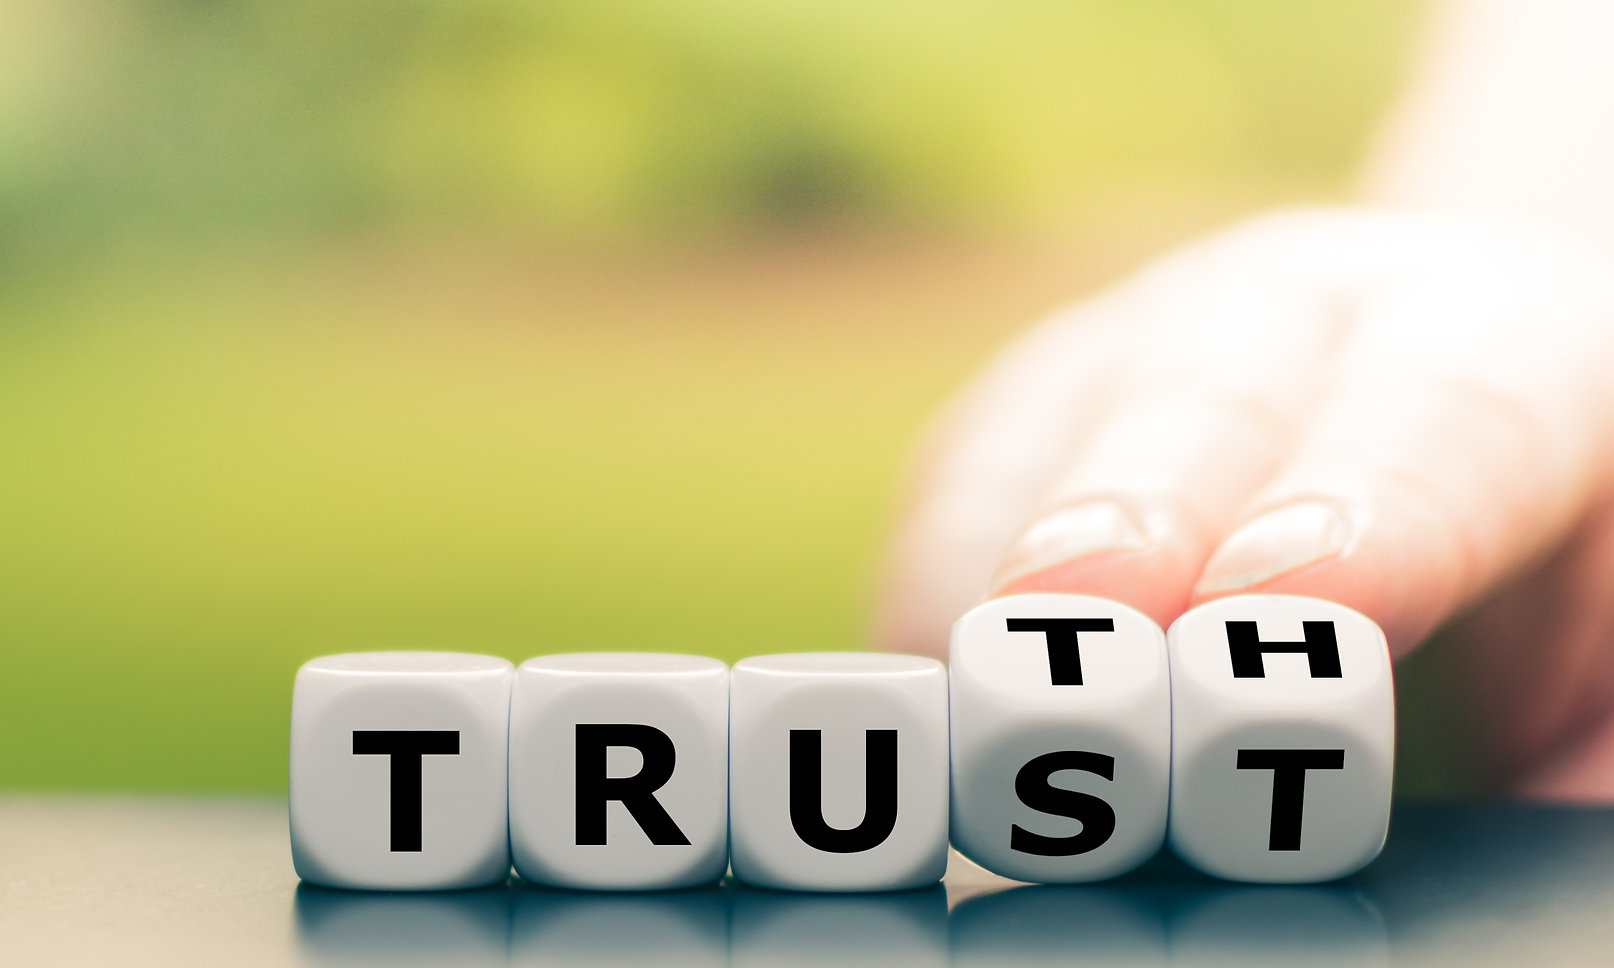 Truth%20instead%20of%20trust.%20Hand%20t